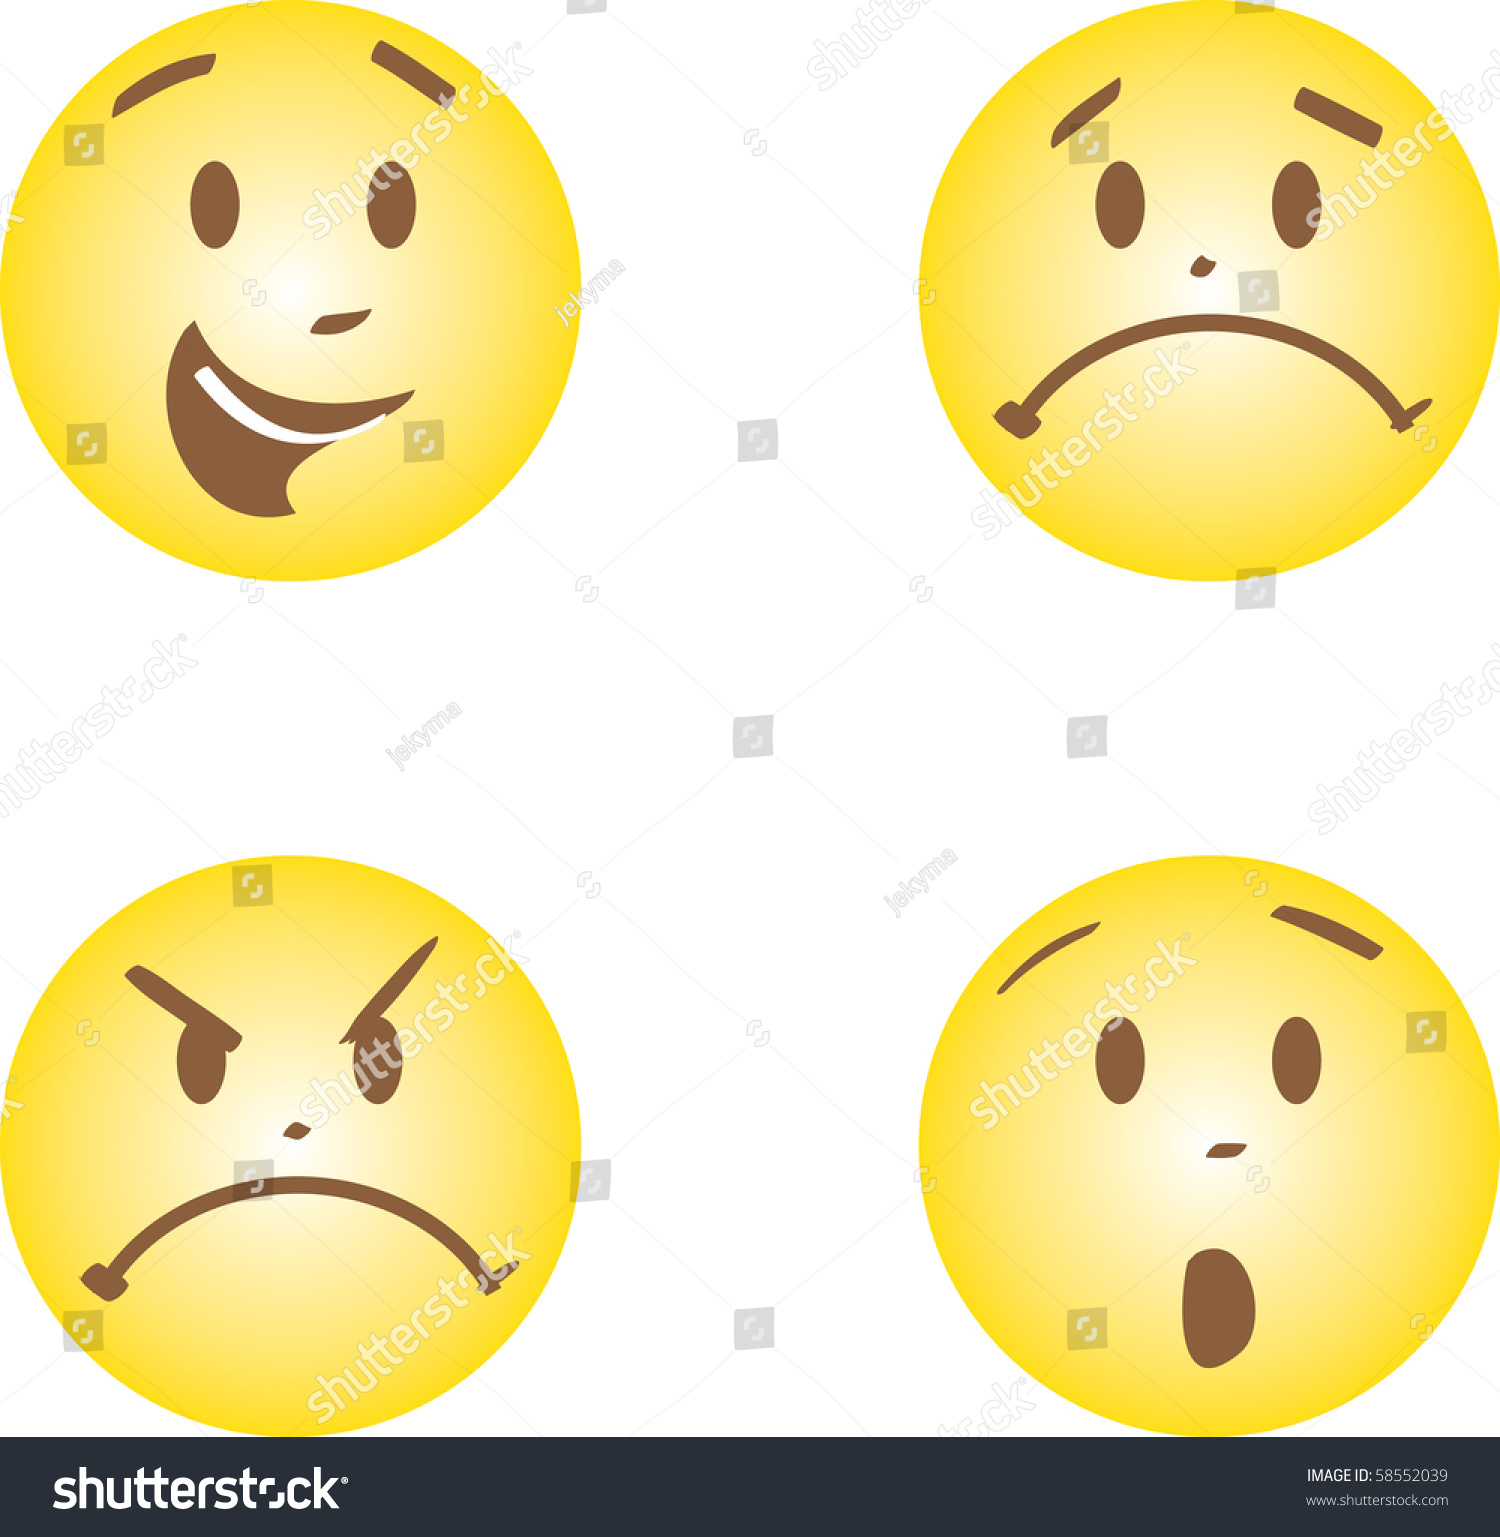 Faces Happy Anger Sad Fright Emotions Stock Illustration